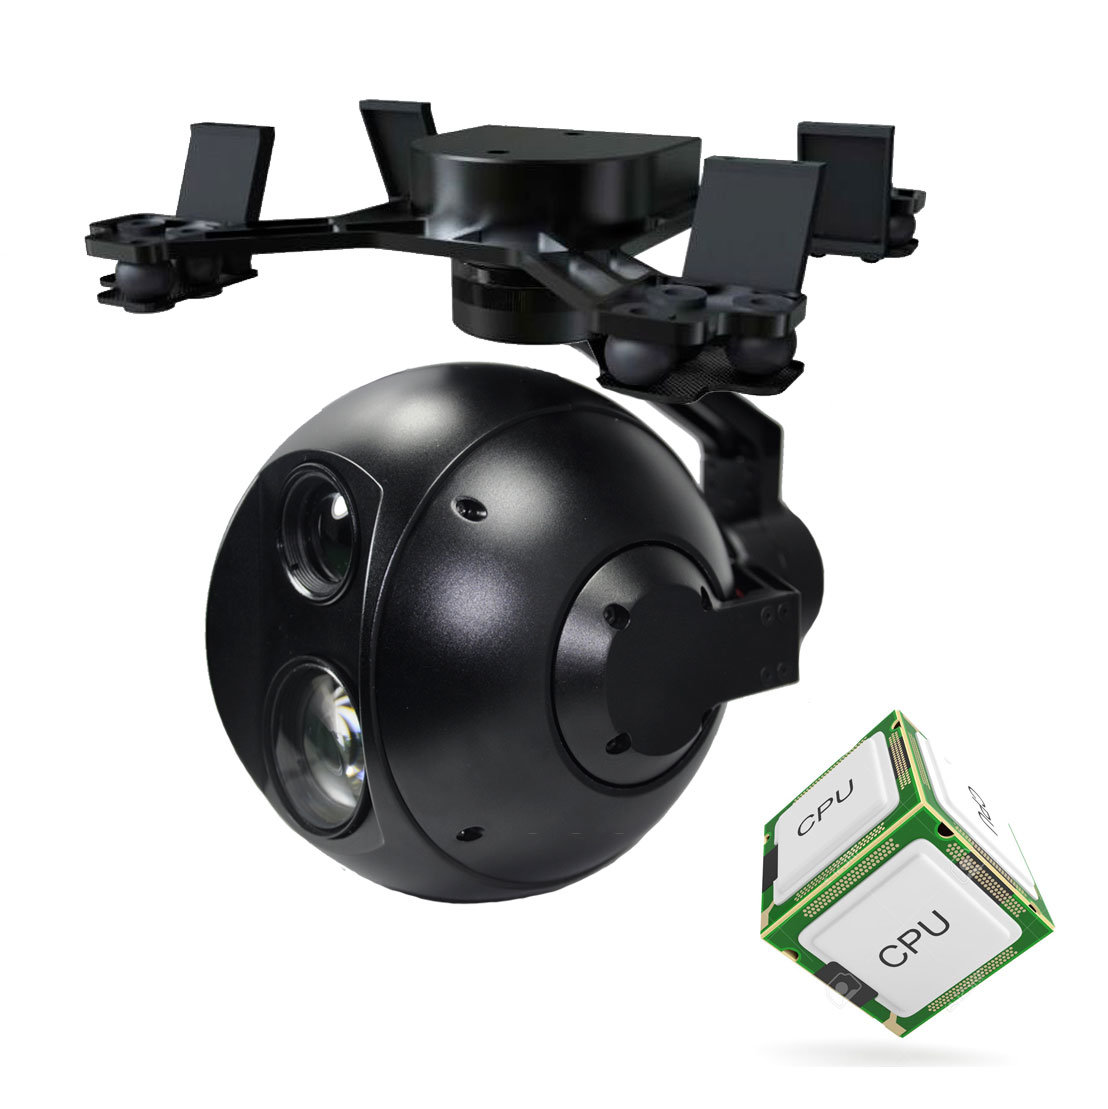 multisensor gyro stabilized gimbal with video processor